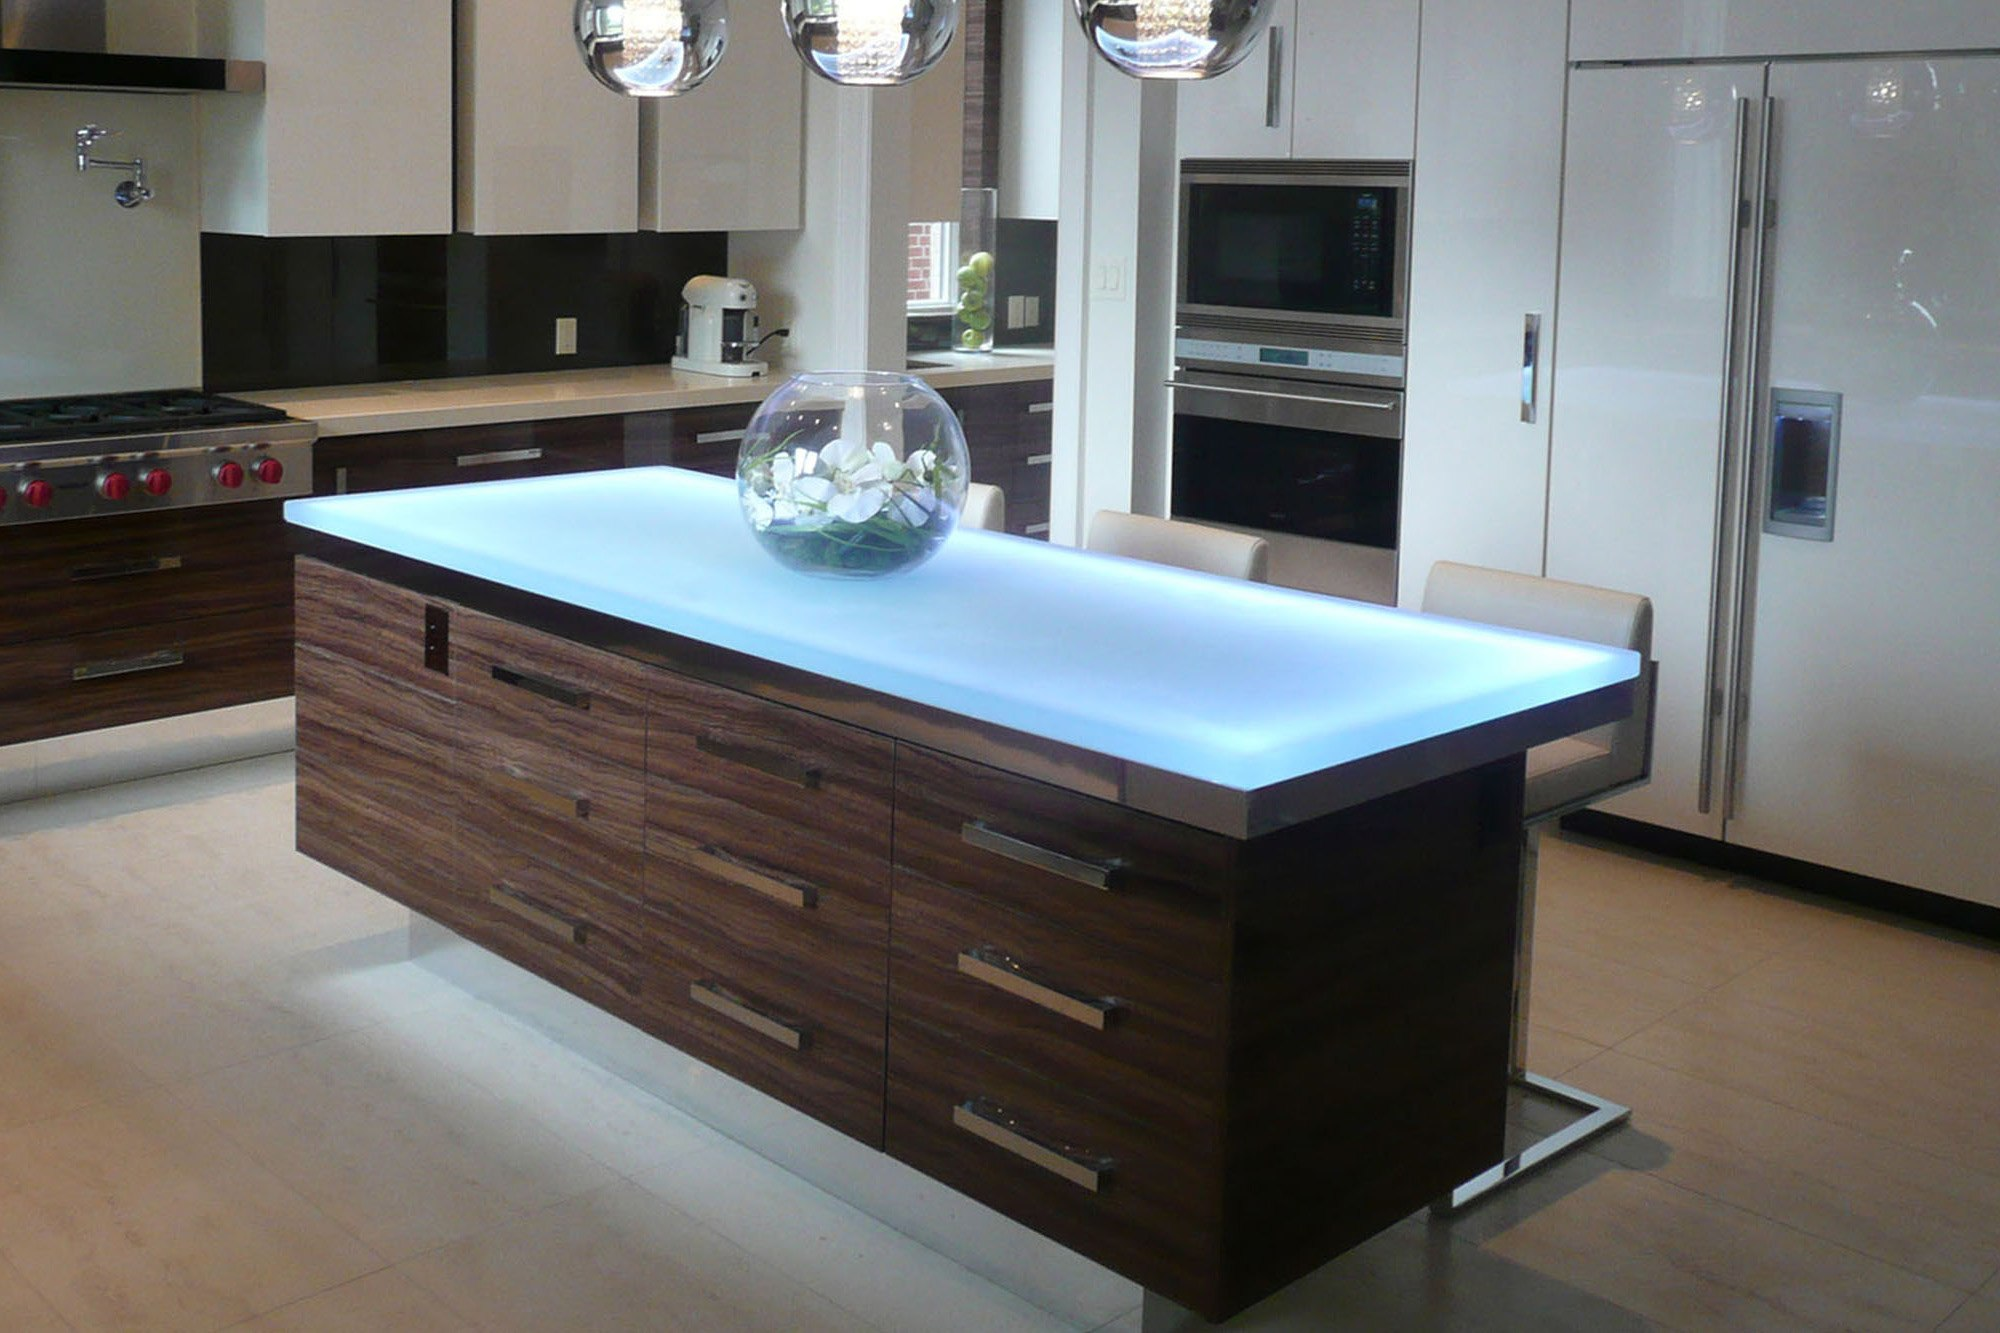 the-ultimate-luxury-touch-for-your-kitchen-decor-glass-countertops-homesthetics-7